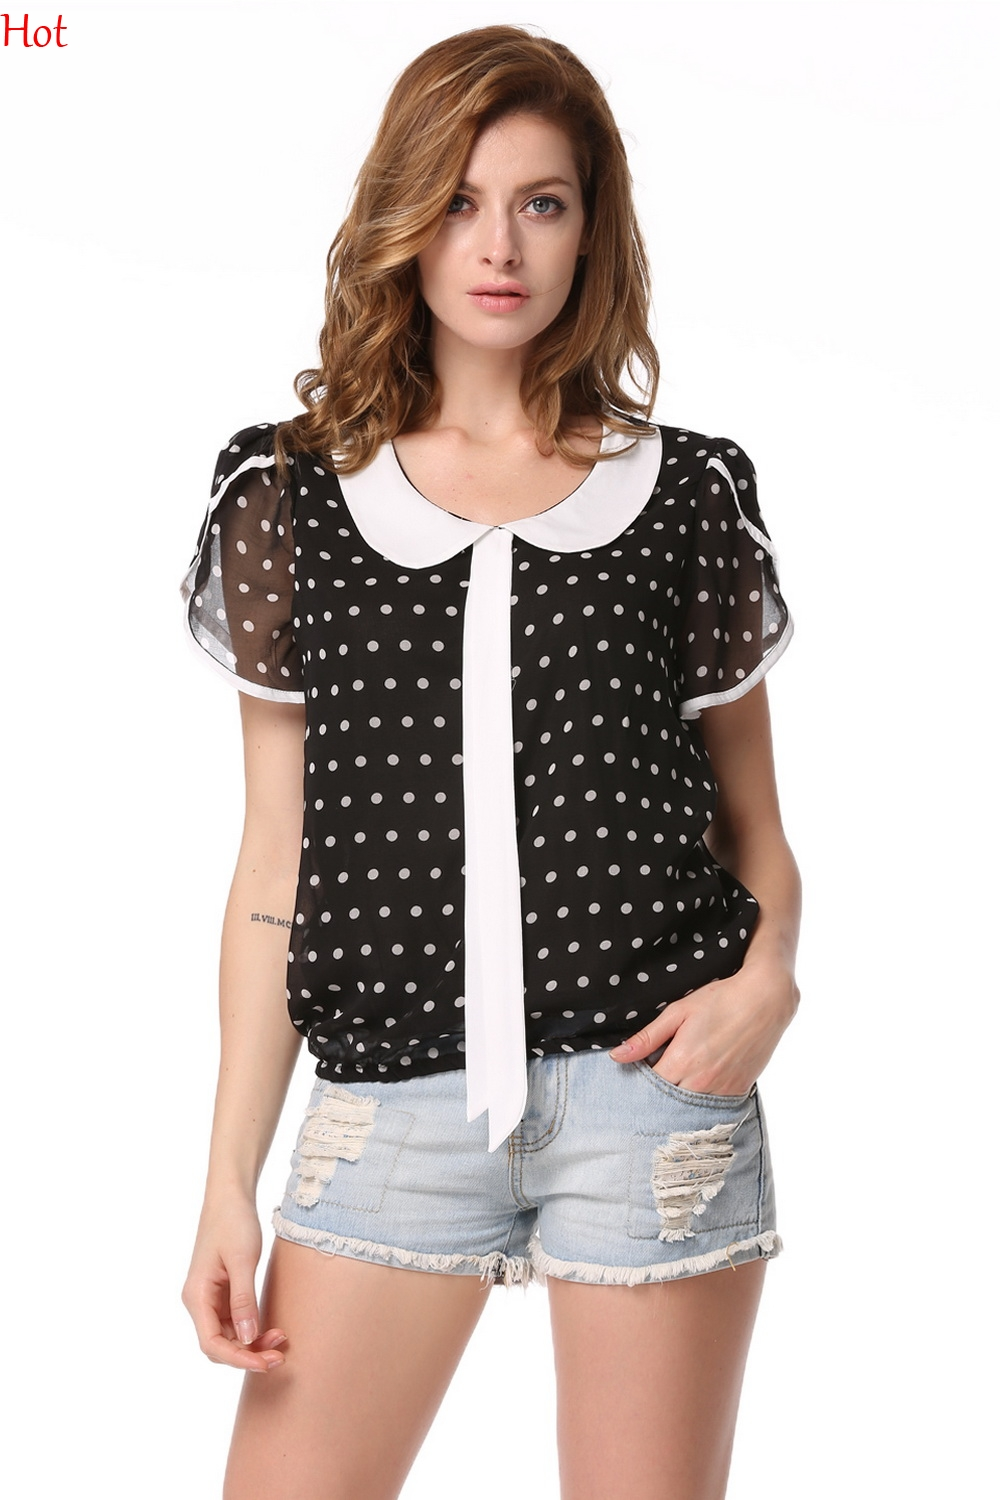 Shop for and buy polka dot blouse online at Macy's. Find polka dot blouse at Macy's.